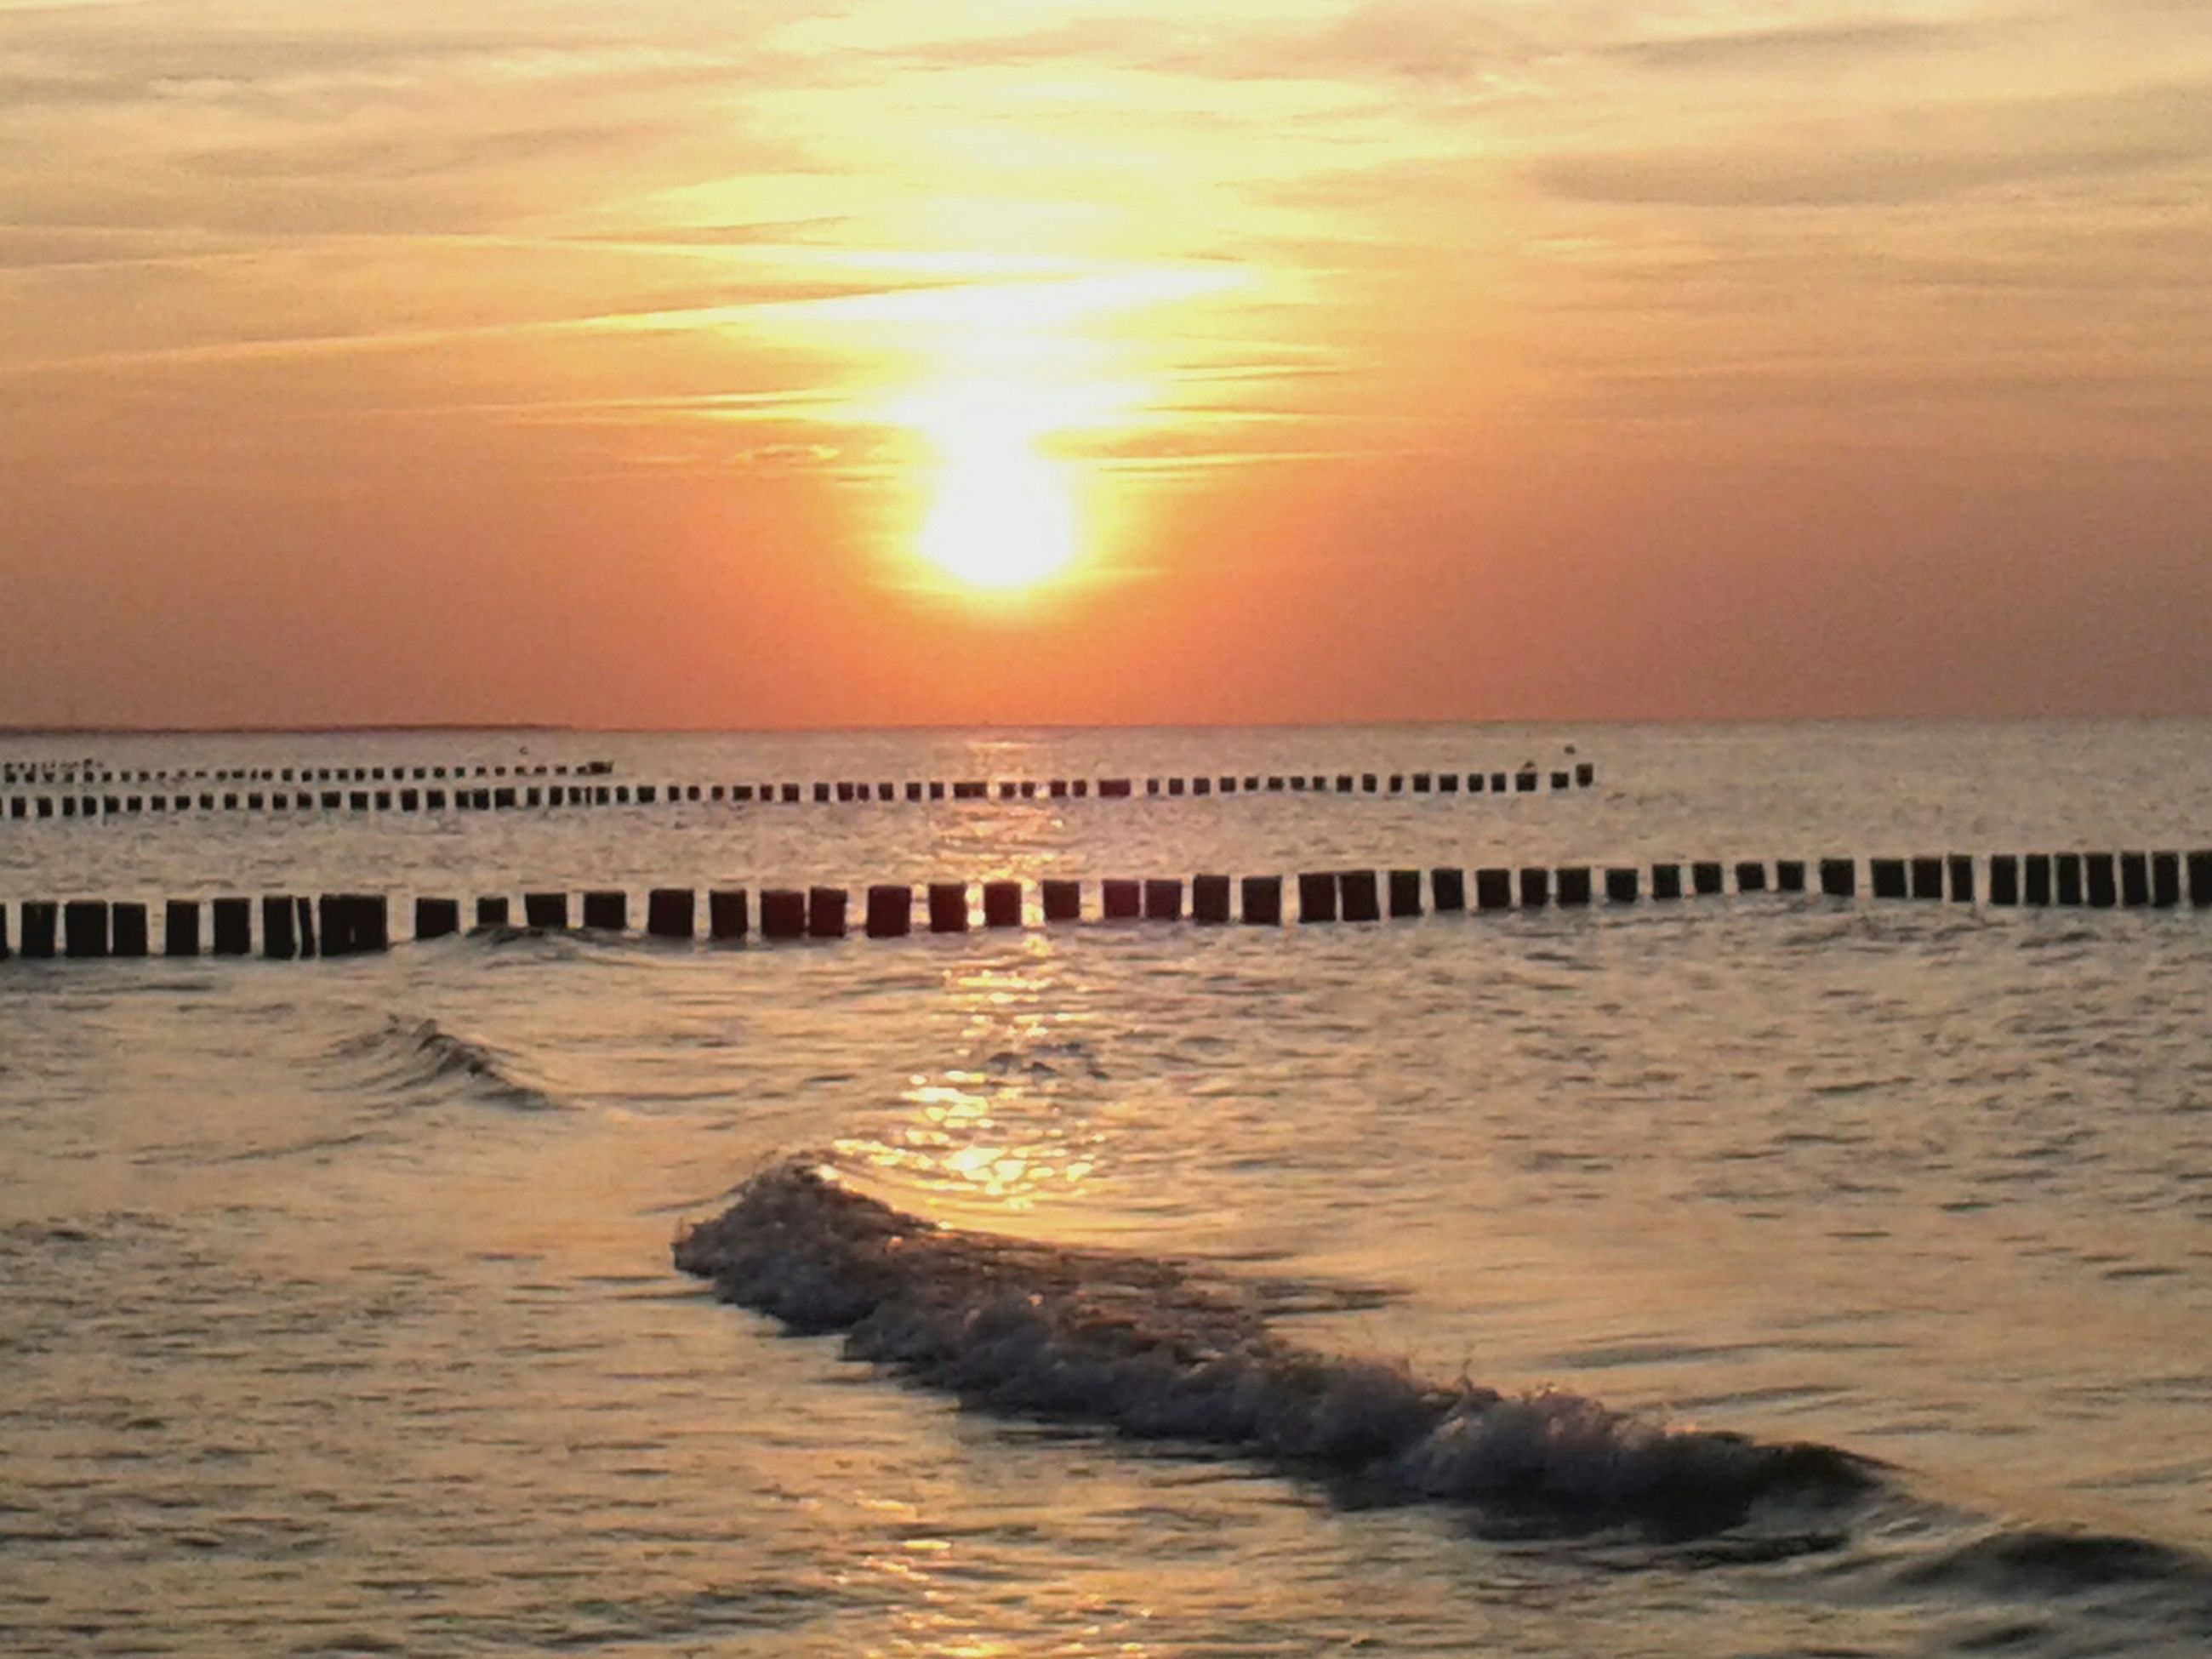 sunset, sea, water, horizon over water, scenics, tranquil scene, sky, beauty in nature, orange color, tranquility, waterfront, pier, idyllic, nature, wooden post, rippled, reflection, built structure, silhouette, sun